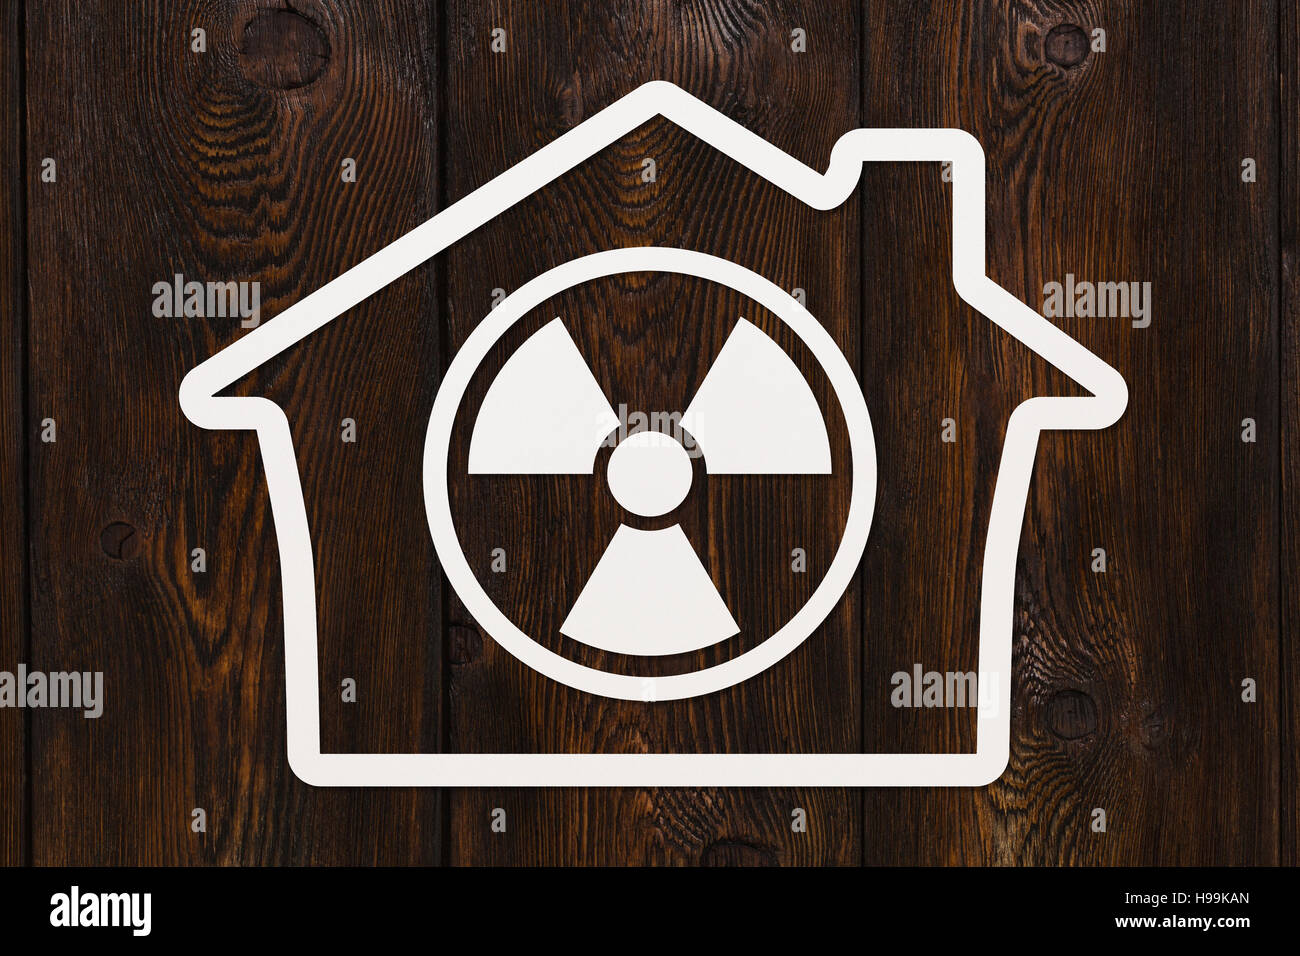 Paper house with radiation danger sign, abstract conceptual image - Stock Image